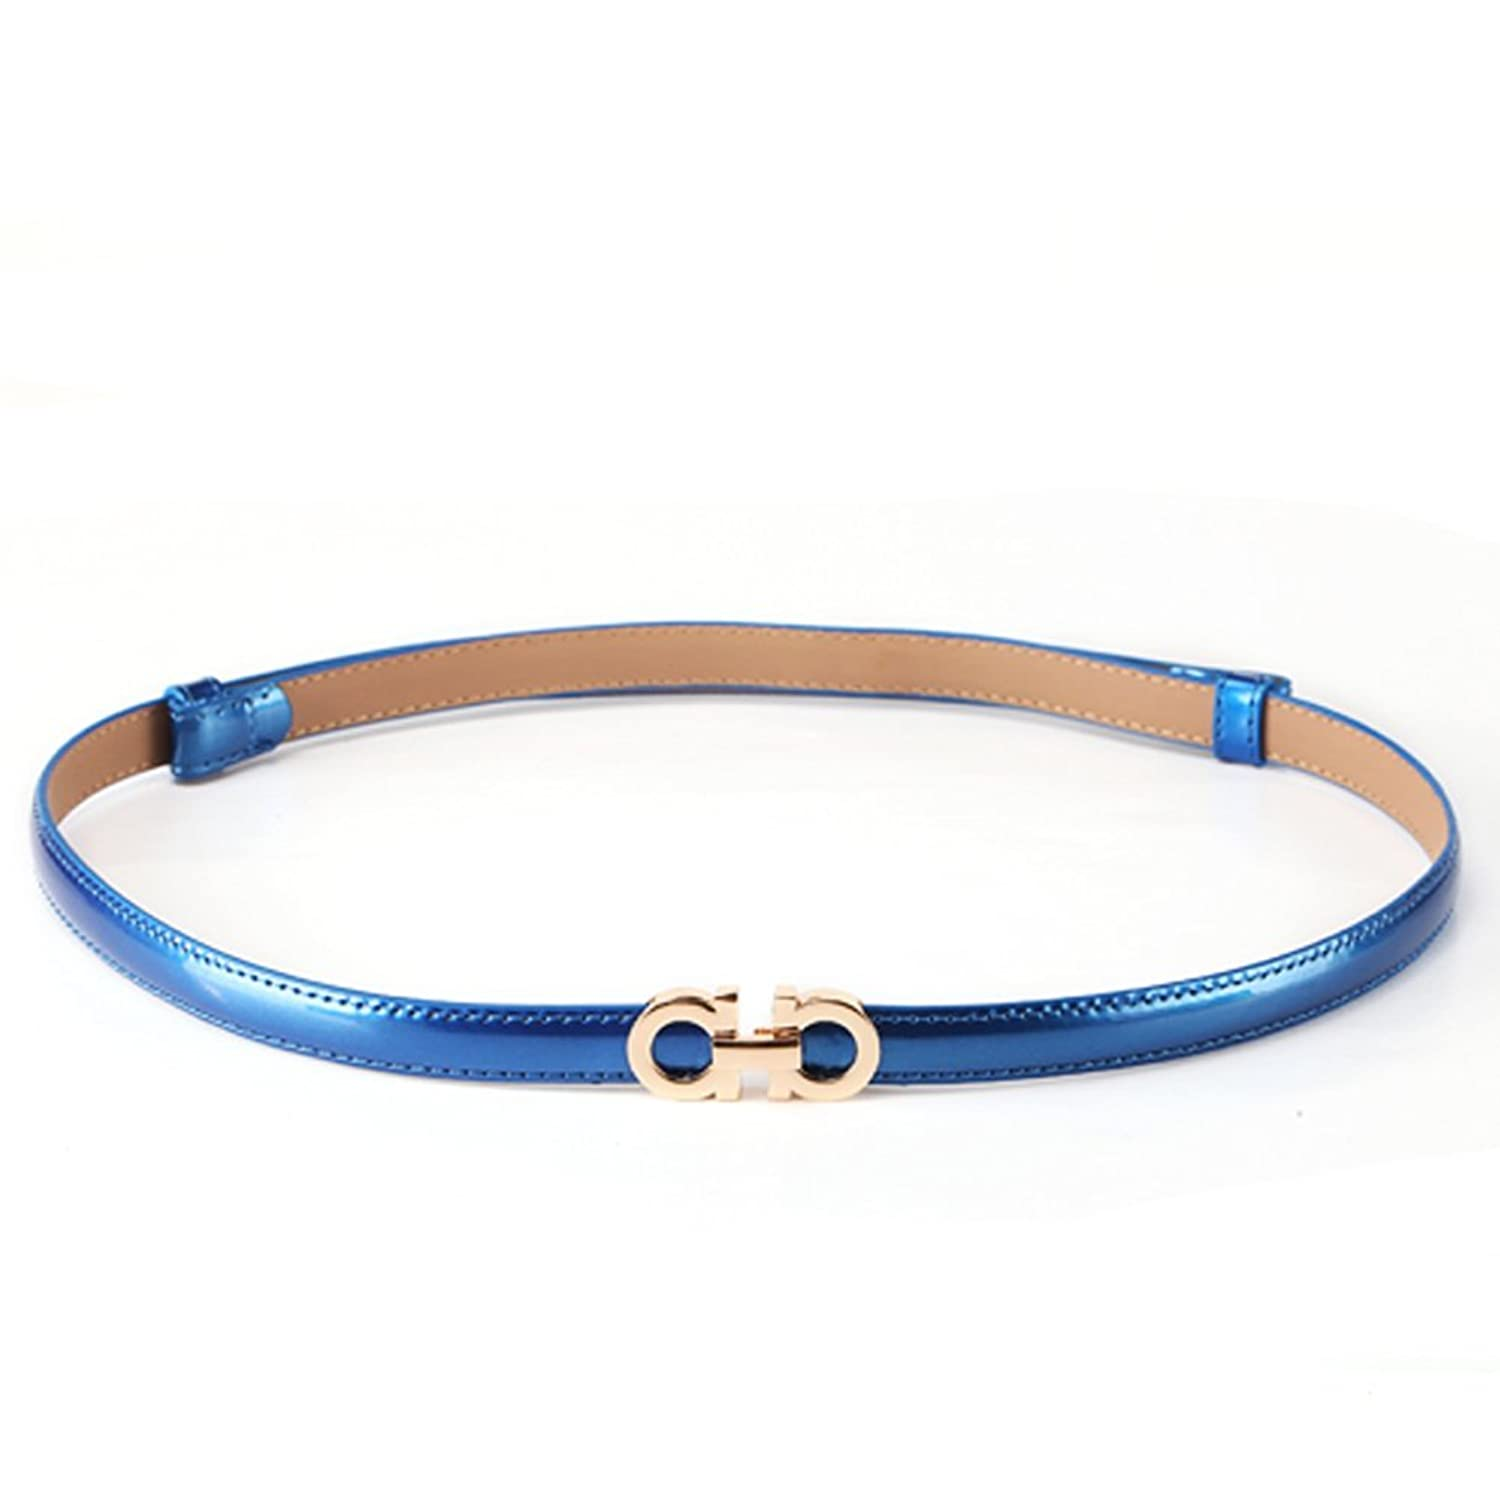 Women Faux Leather Narrow Blue Hip Waist Thin Fashion Belt Gold Metal Buckle S M. Brand New · Unbranded · Size:S · Blue. $ Buy It Now. Free Shipping. SPONSORED. New Women Belt Gold Metal Fashion Hip Waist Thin Black Green Orange Yellow S M. Brand New · Unbranded. $